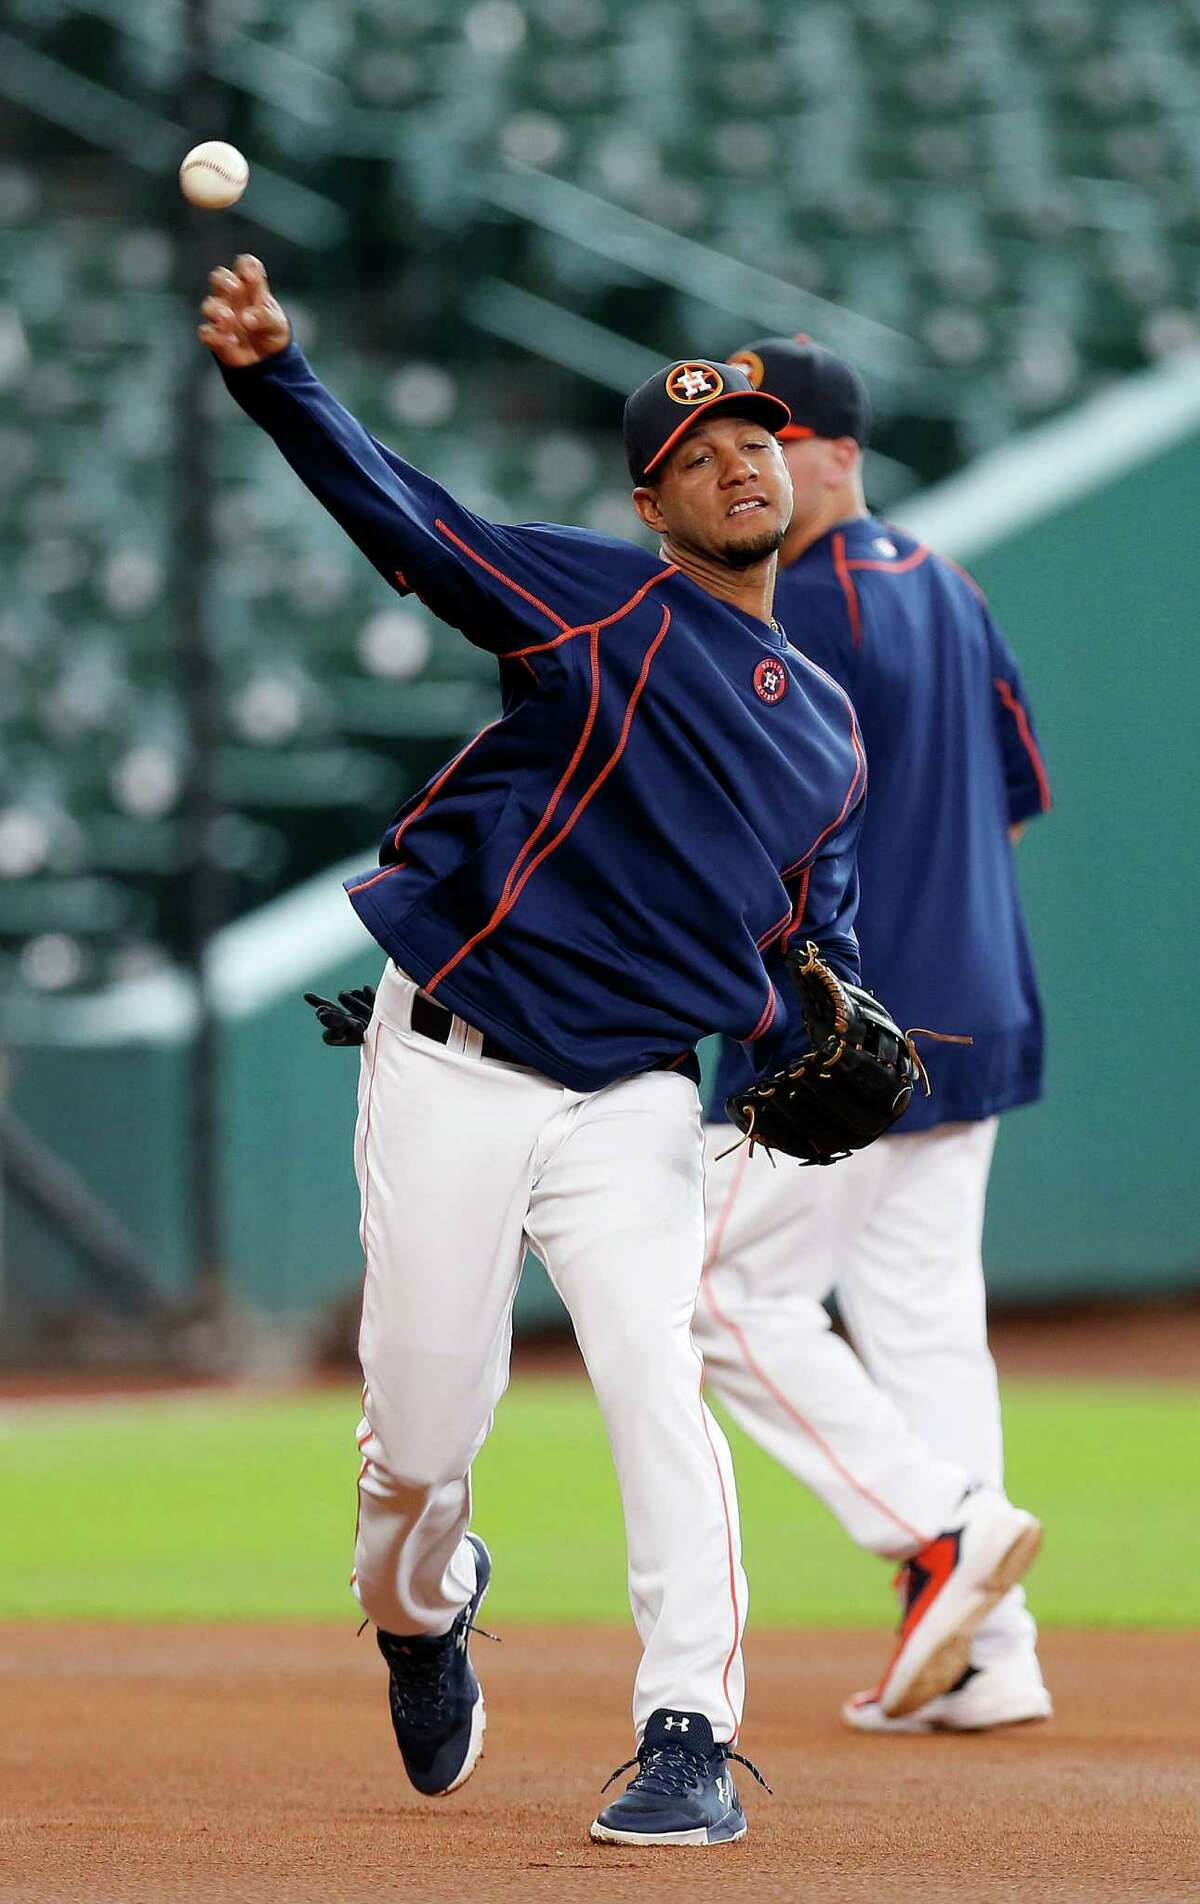 Houston Astros designated hitter Yulieski Gurriel throws the ball during batting practice before an MLB game at Minute Maid Park, Friday, Aug. 26, 2016 in Houston.